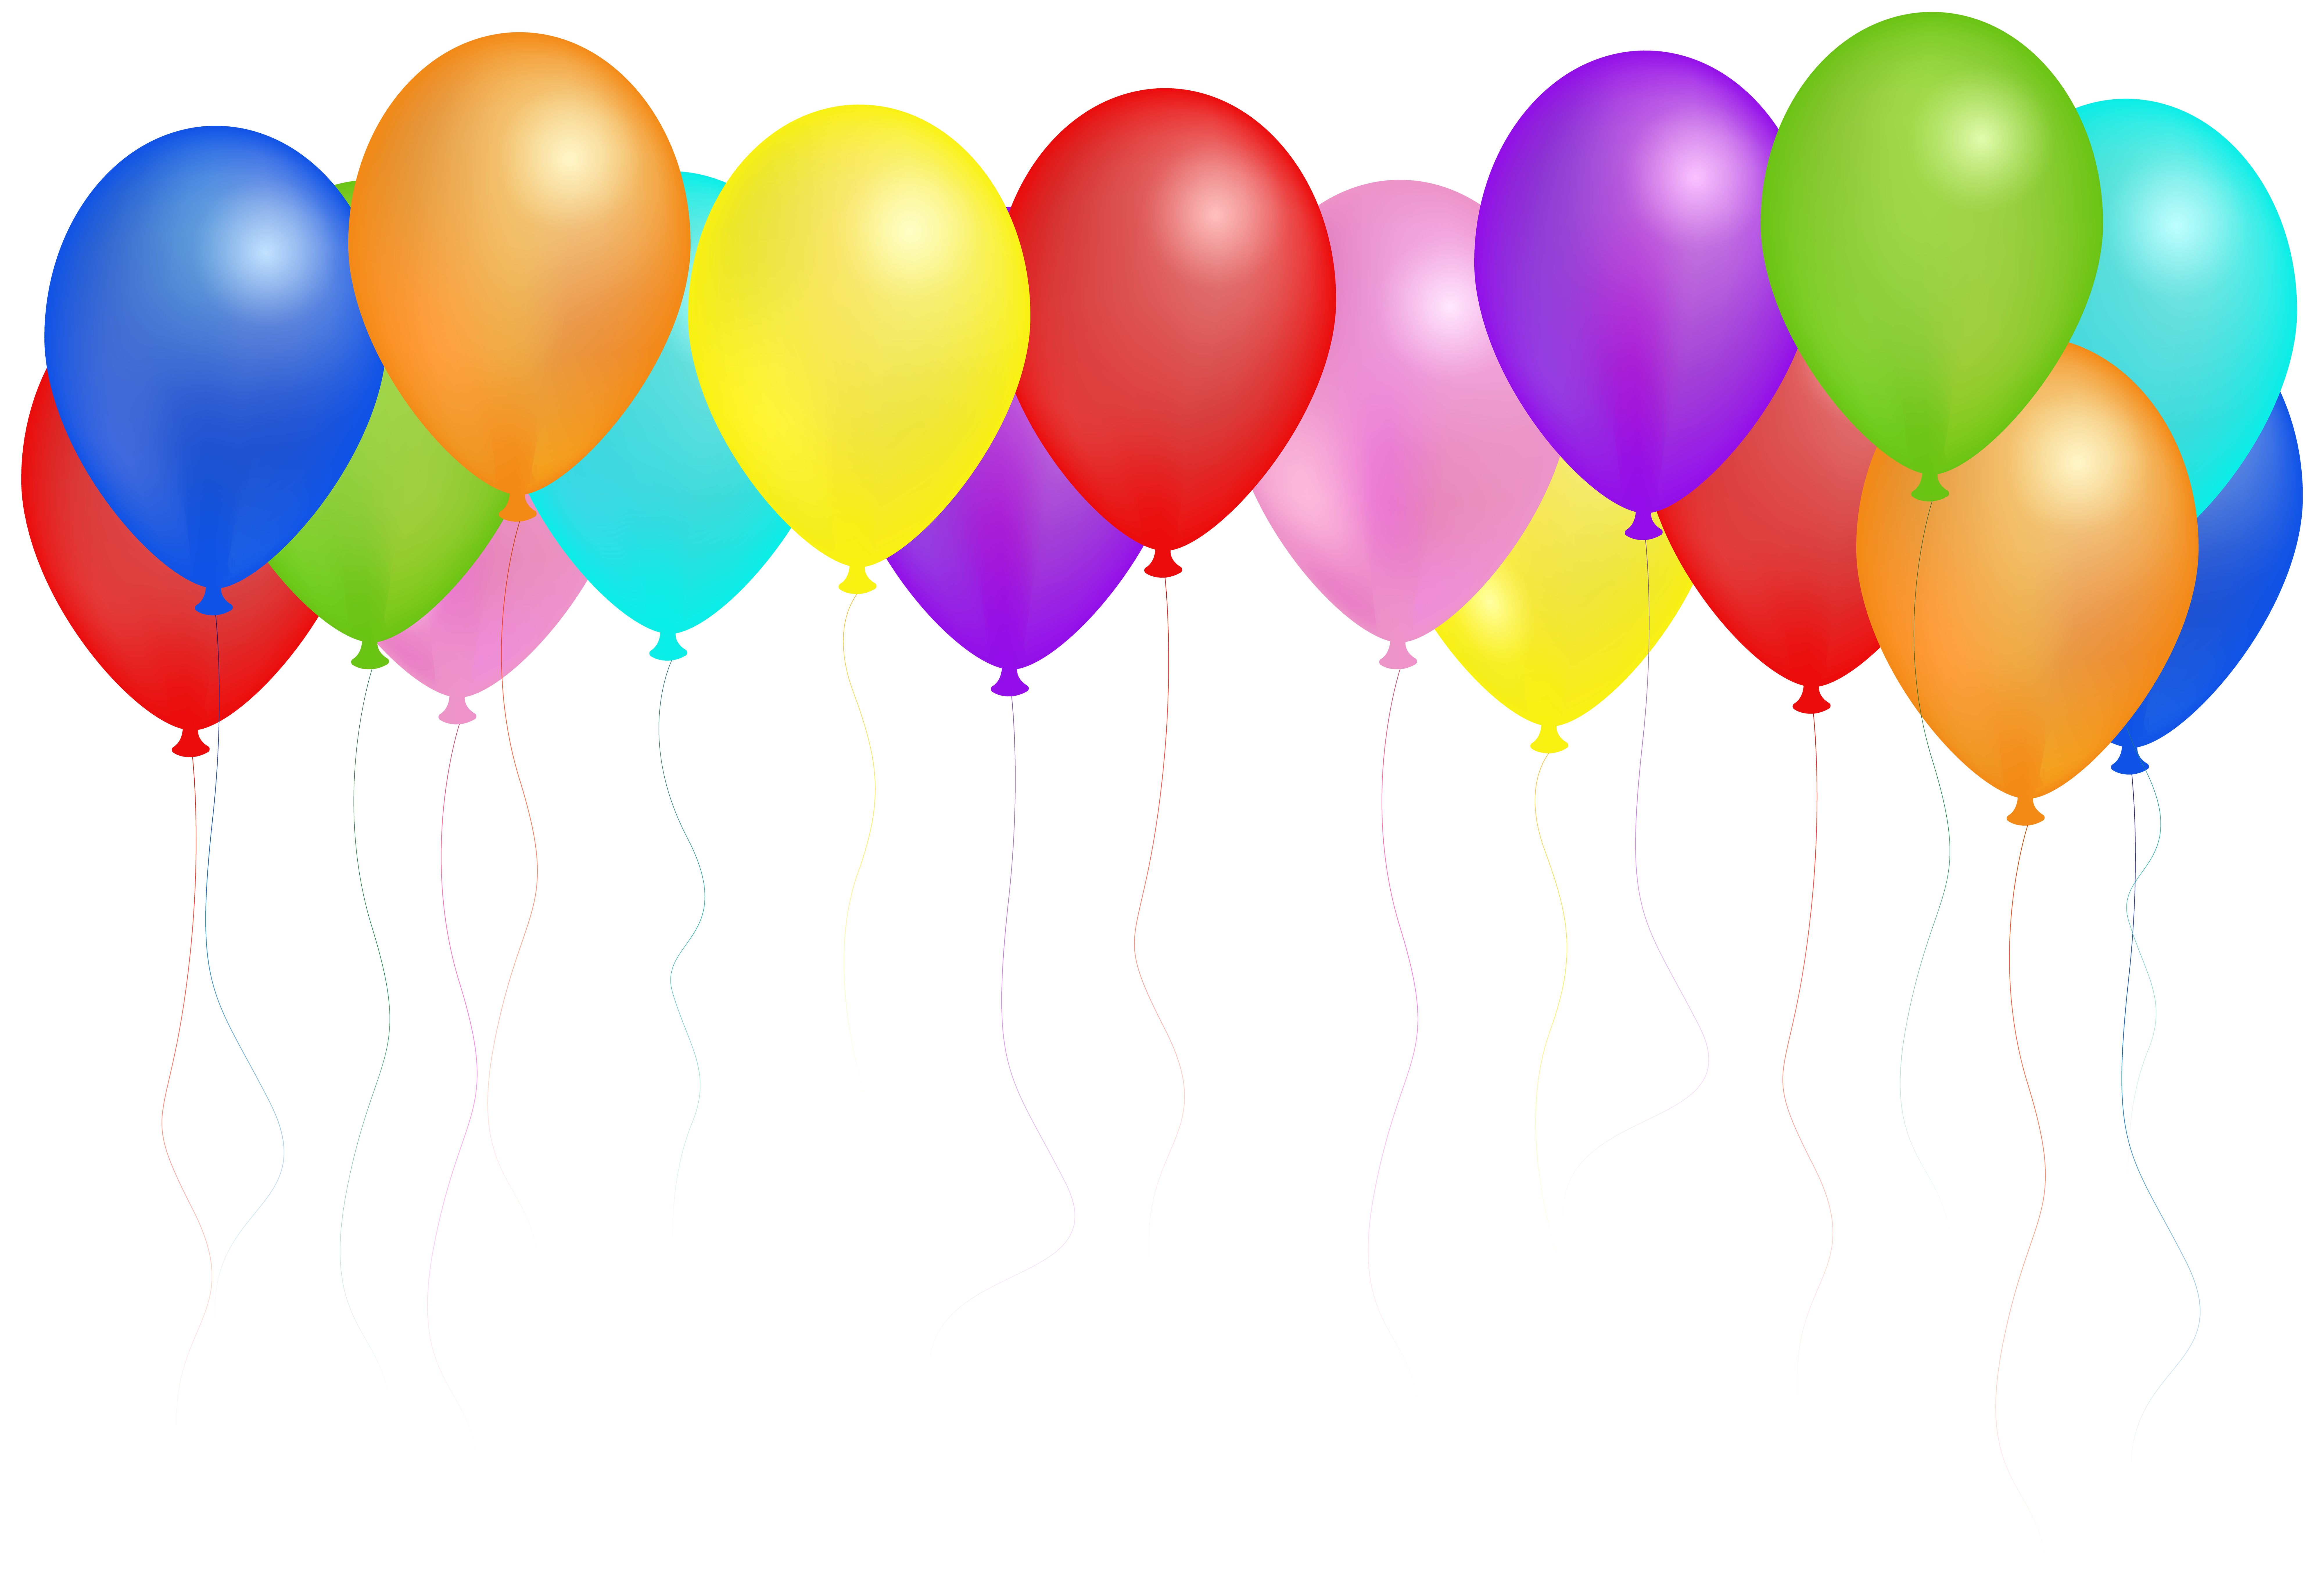 Years free clipart balloons. Png clip art image